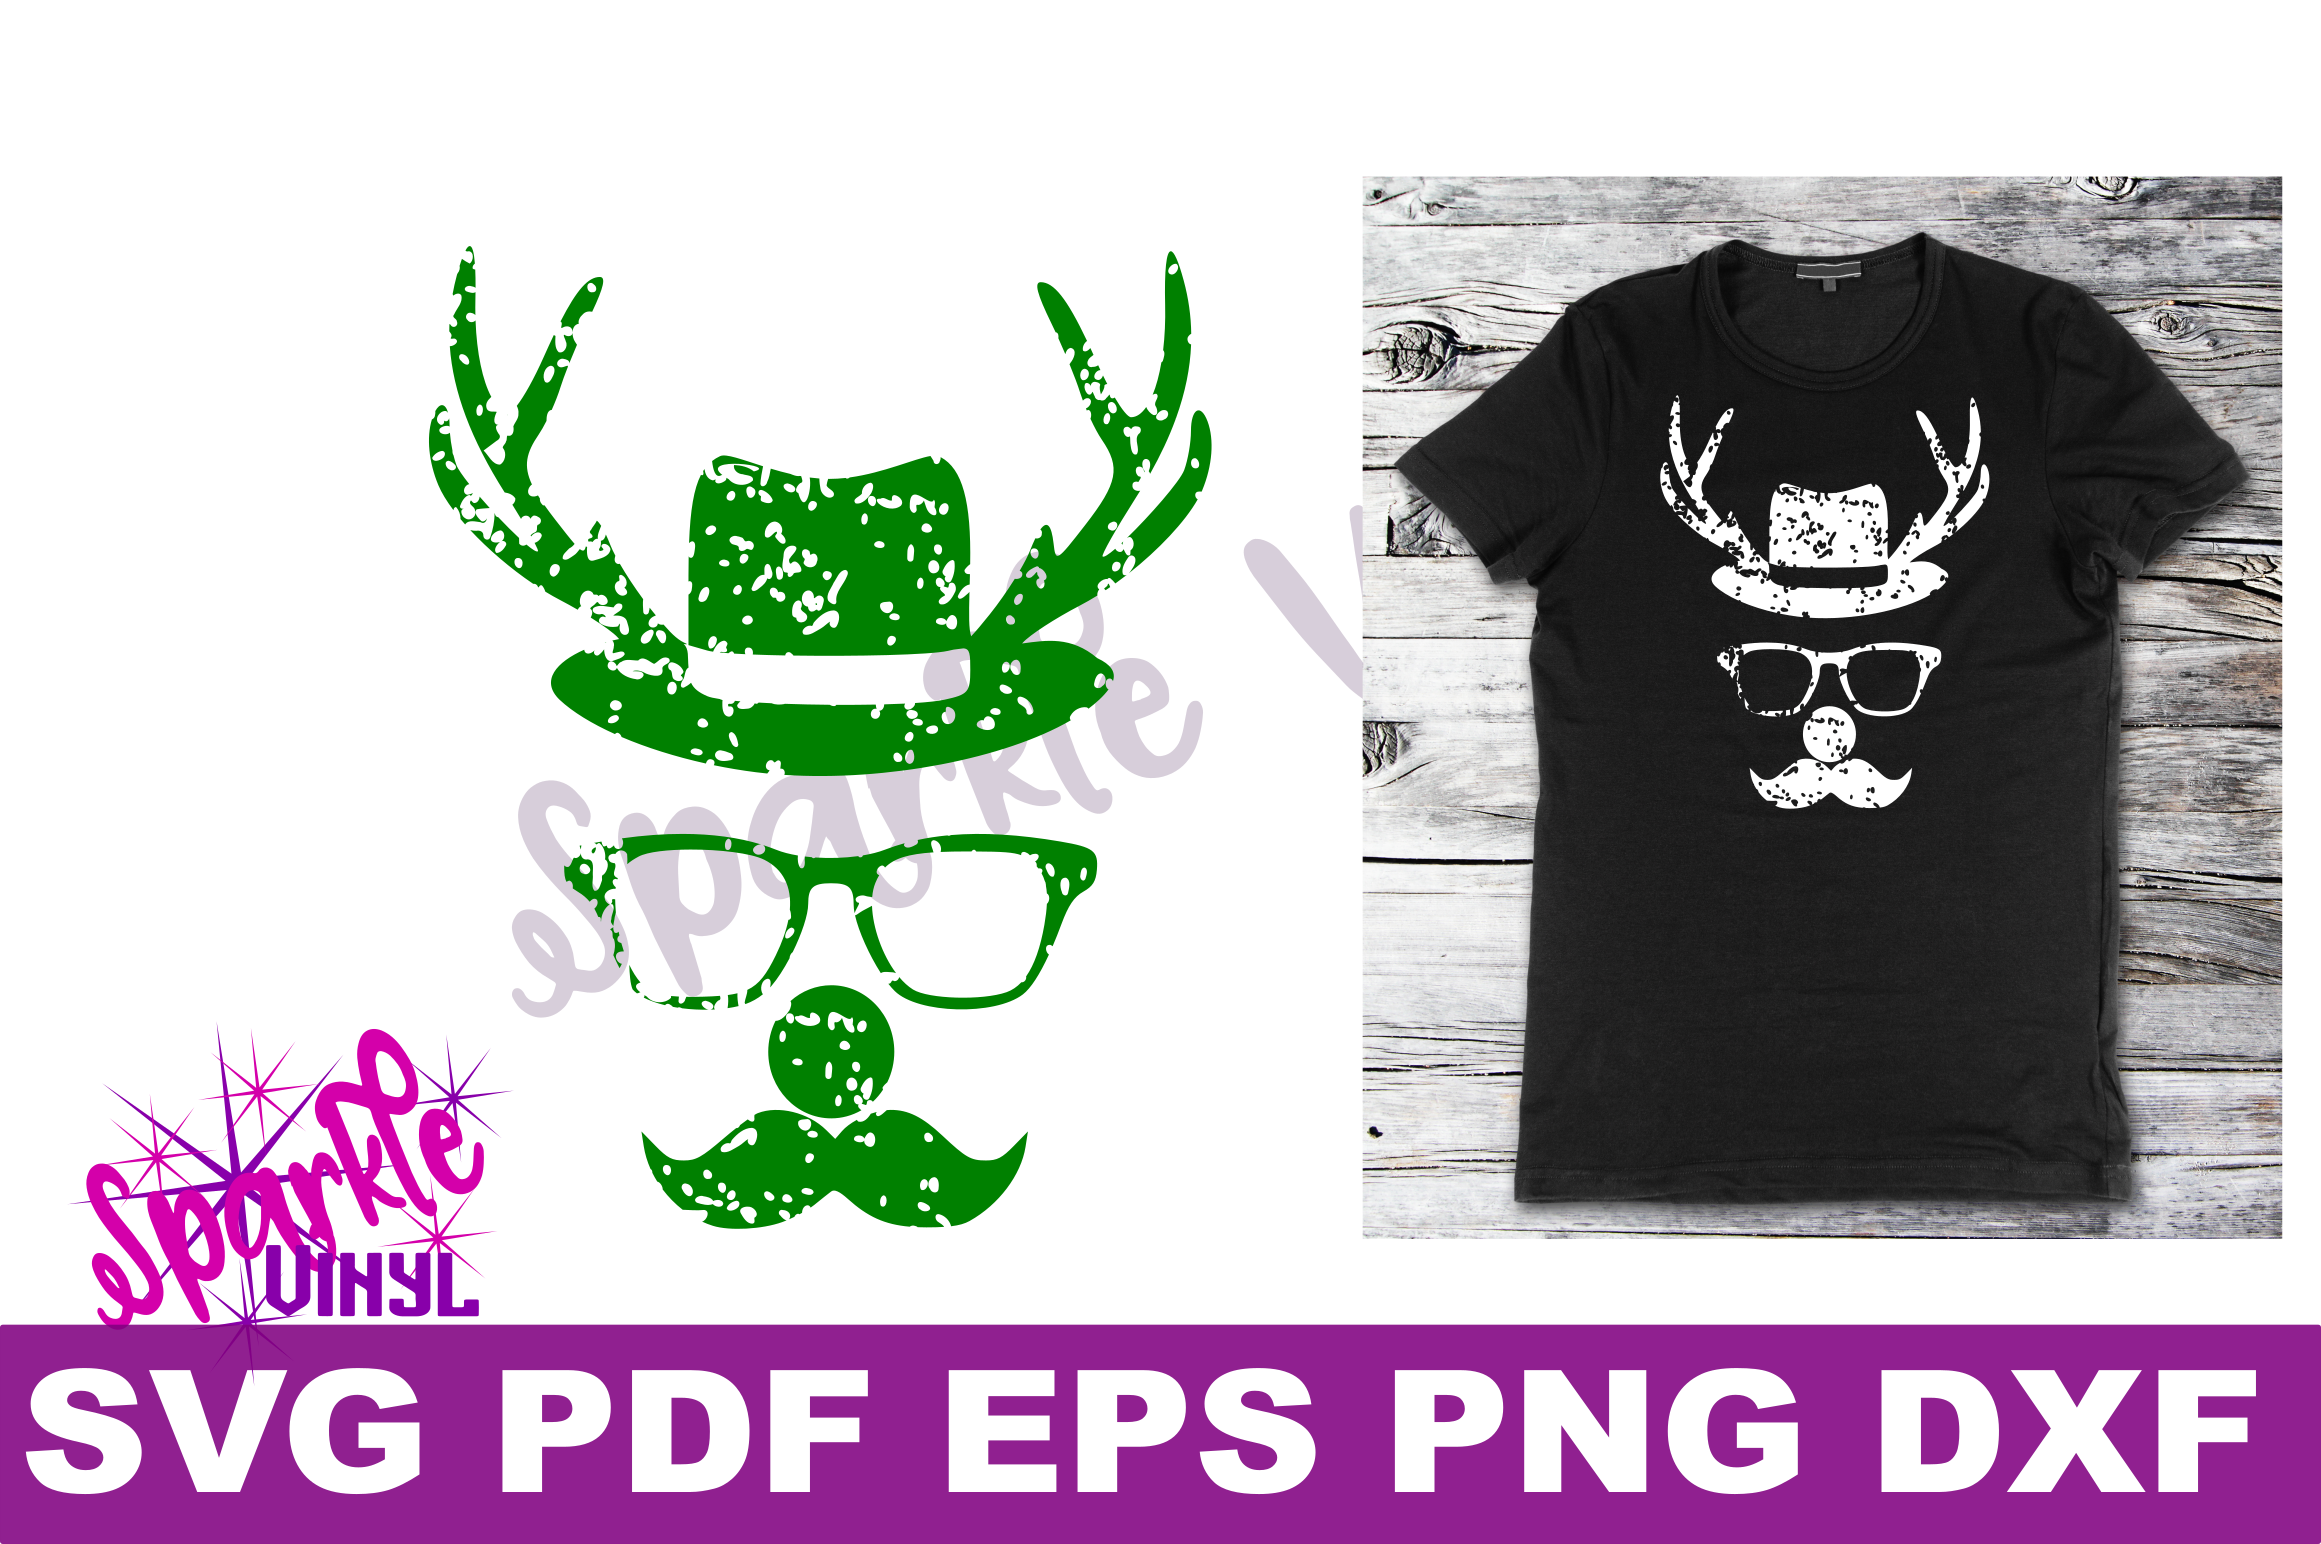 Svg Distressed Grunge Christmas vintage reindeer shirt svg files for cricut or silhouette, Reindeer with glasses red nose mustache hat svg printable example image 3